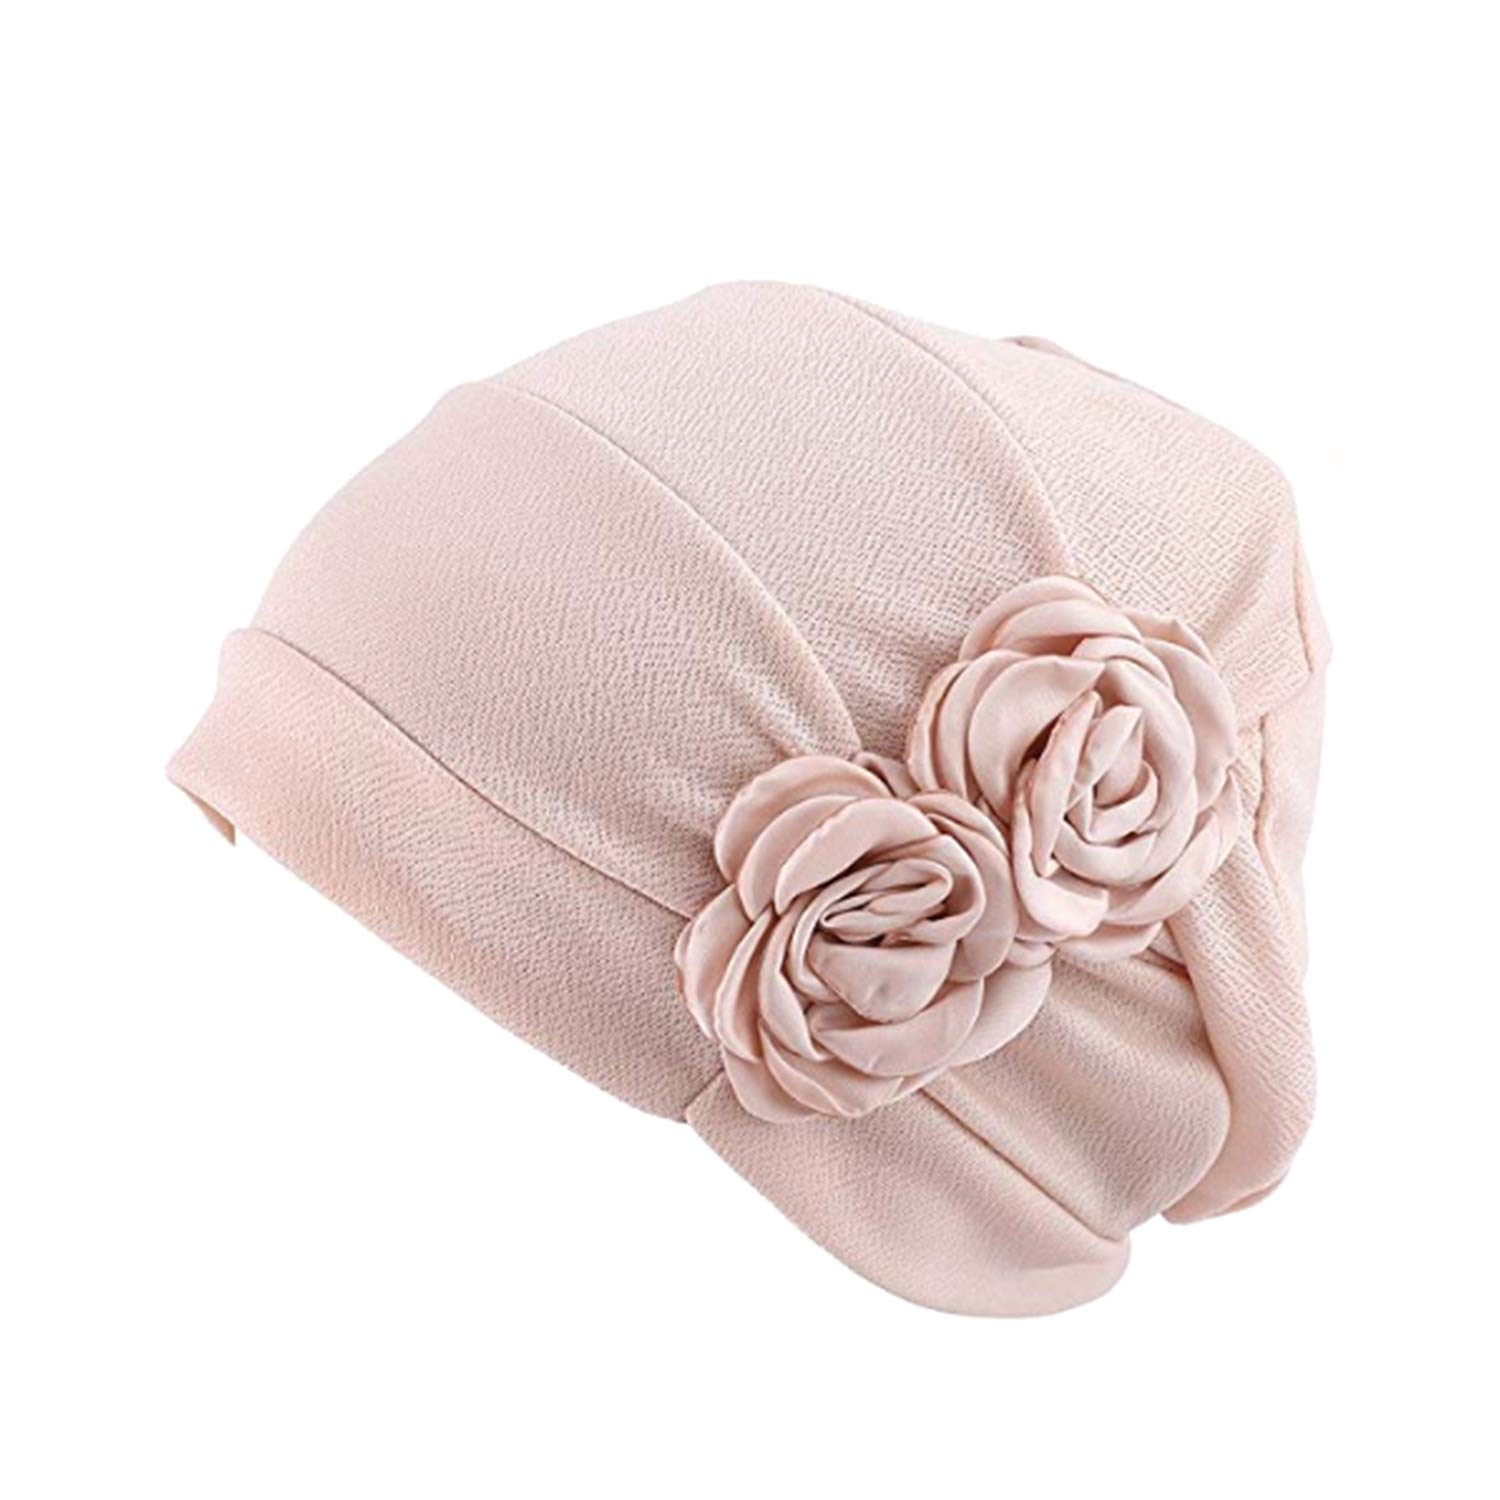 1920s Style Hats WETOO Women Chemo Hat Beanie Flower Headscarf Turban Headwear for Cancer $7.99 AT vintagedancer.com